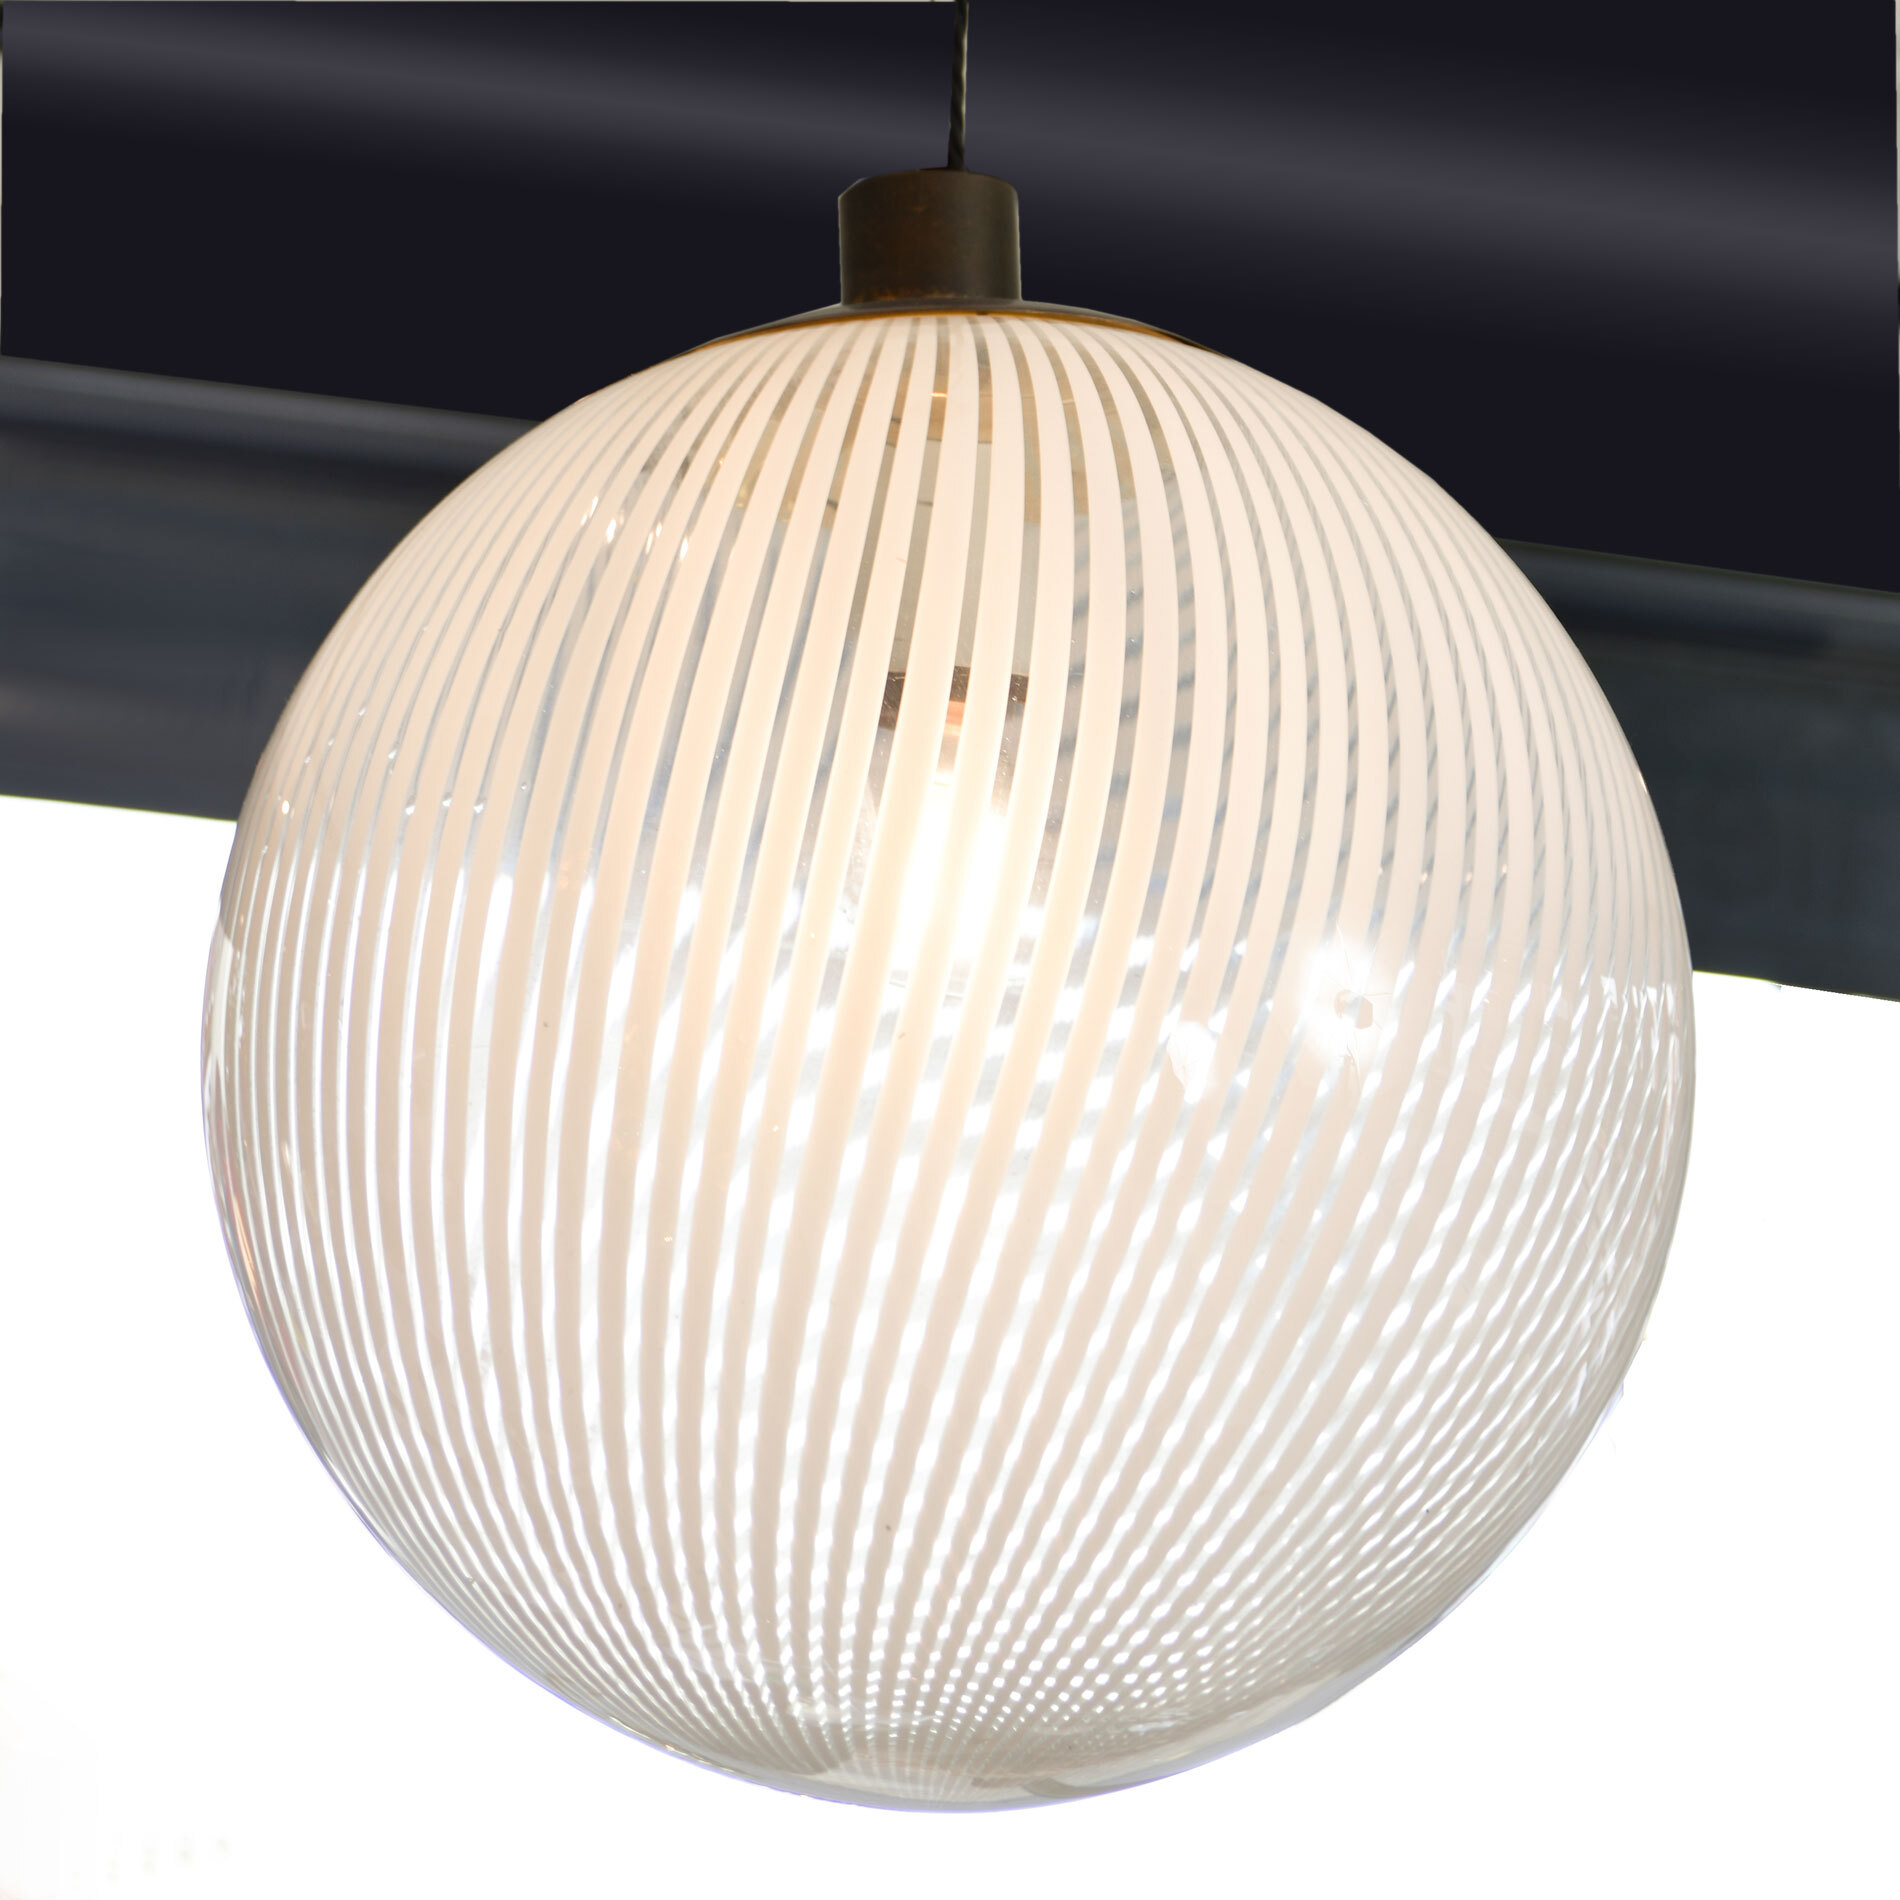 The image for Murano Globe Pendant 01